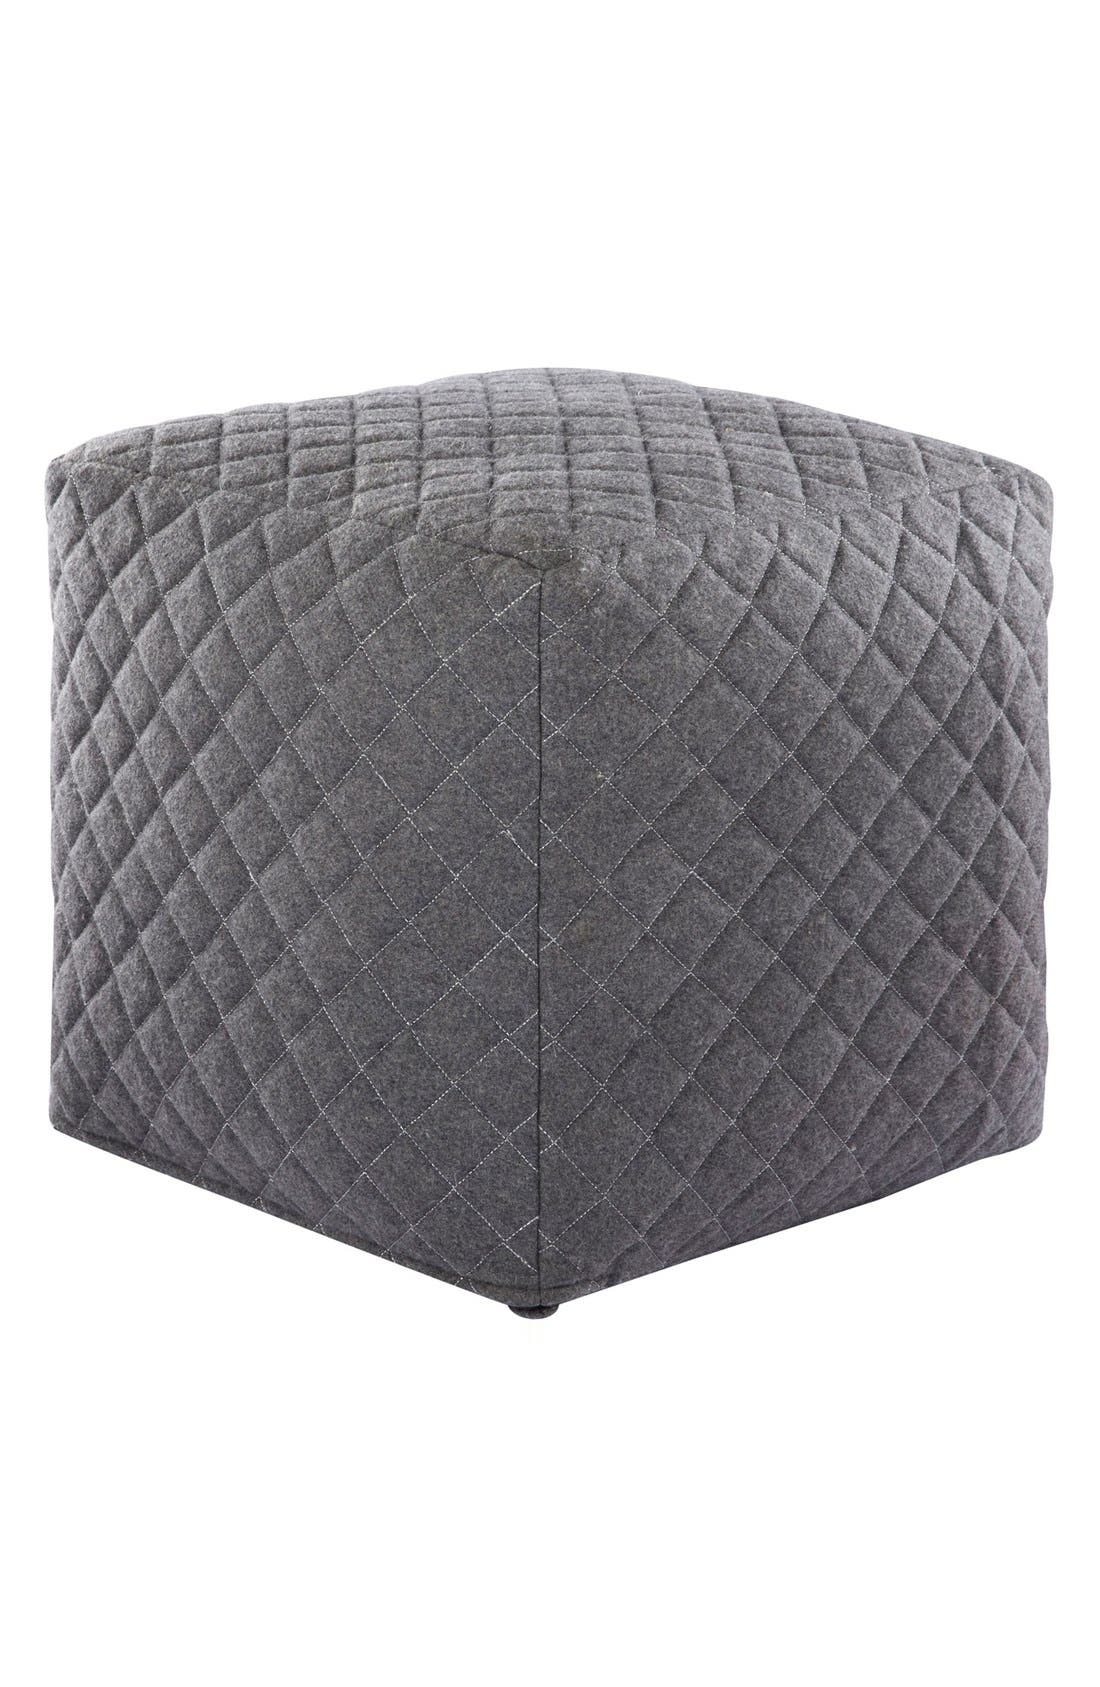 'Nikki Chu Ultra' Pouf,                         Main,                         color, Grey